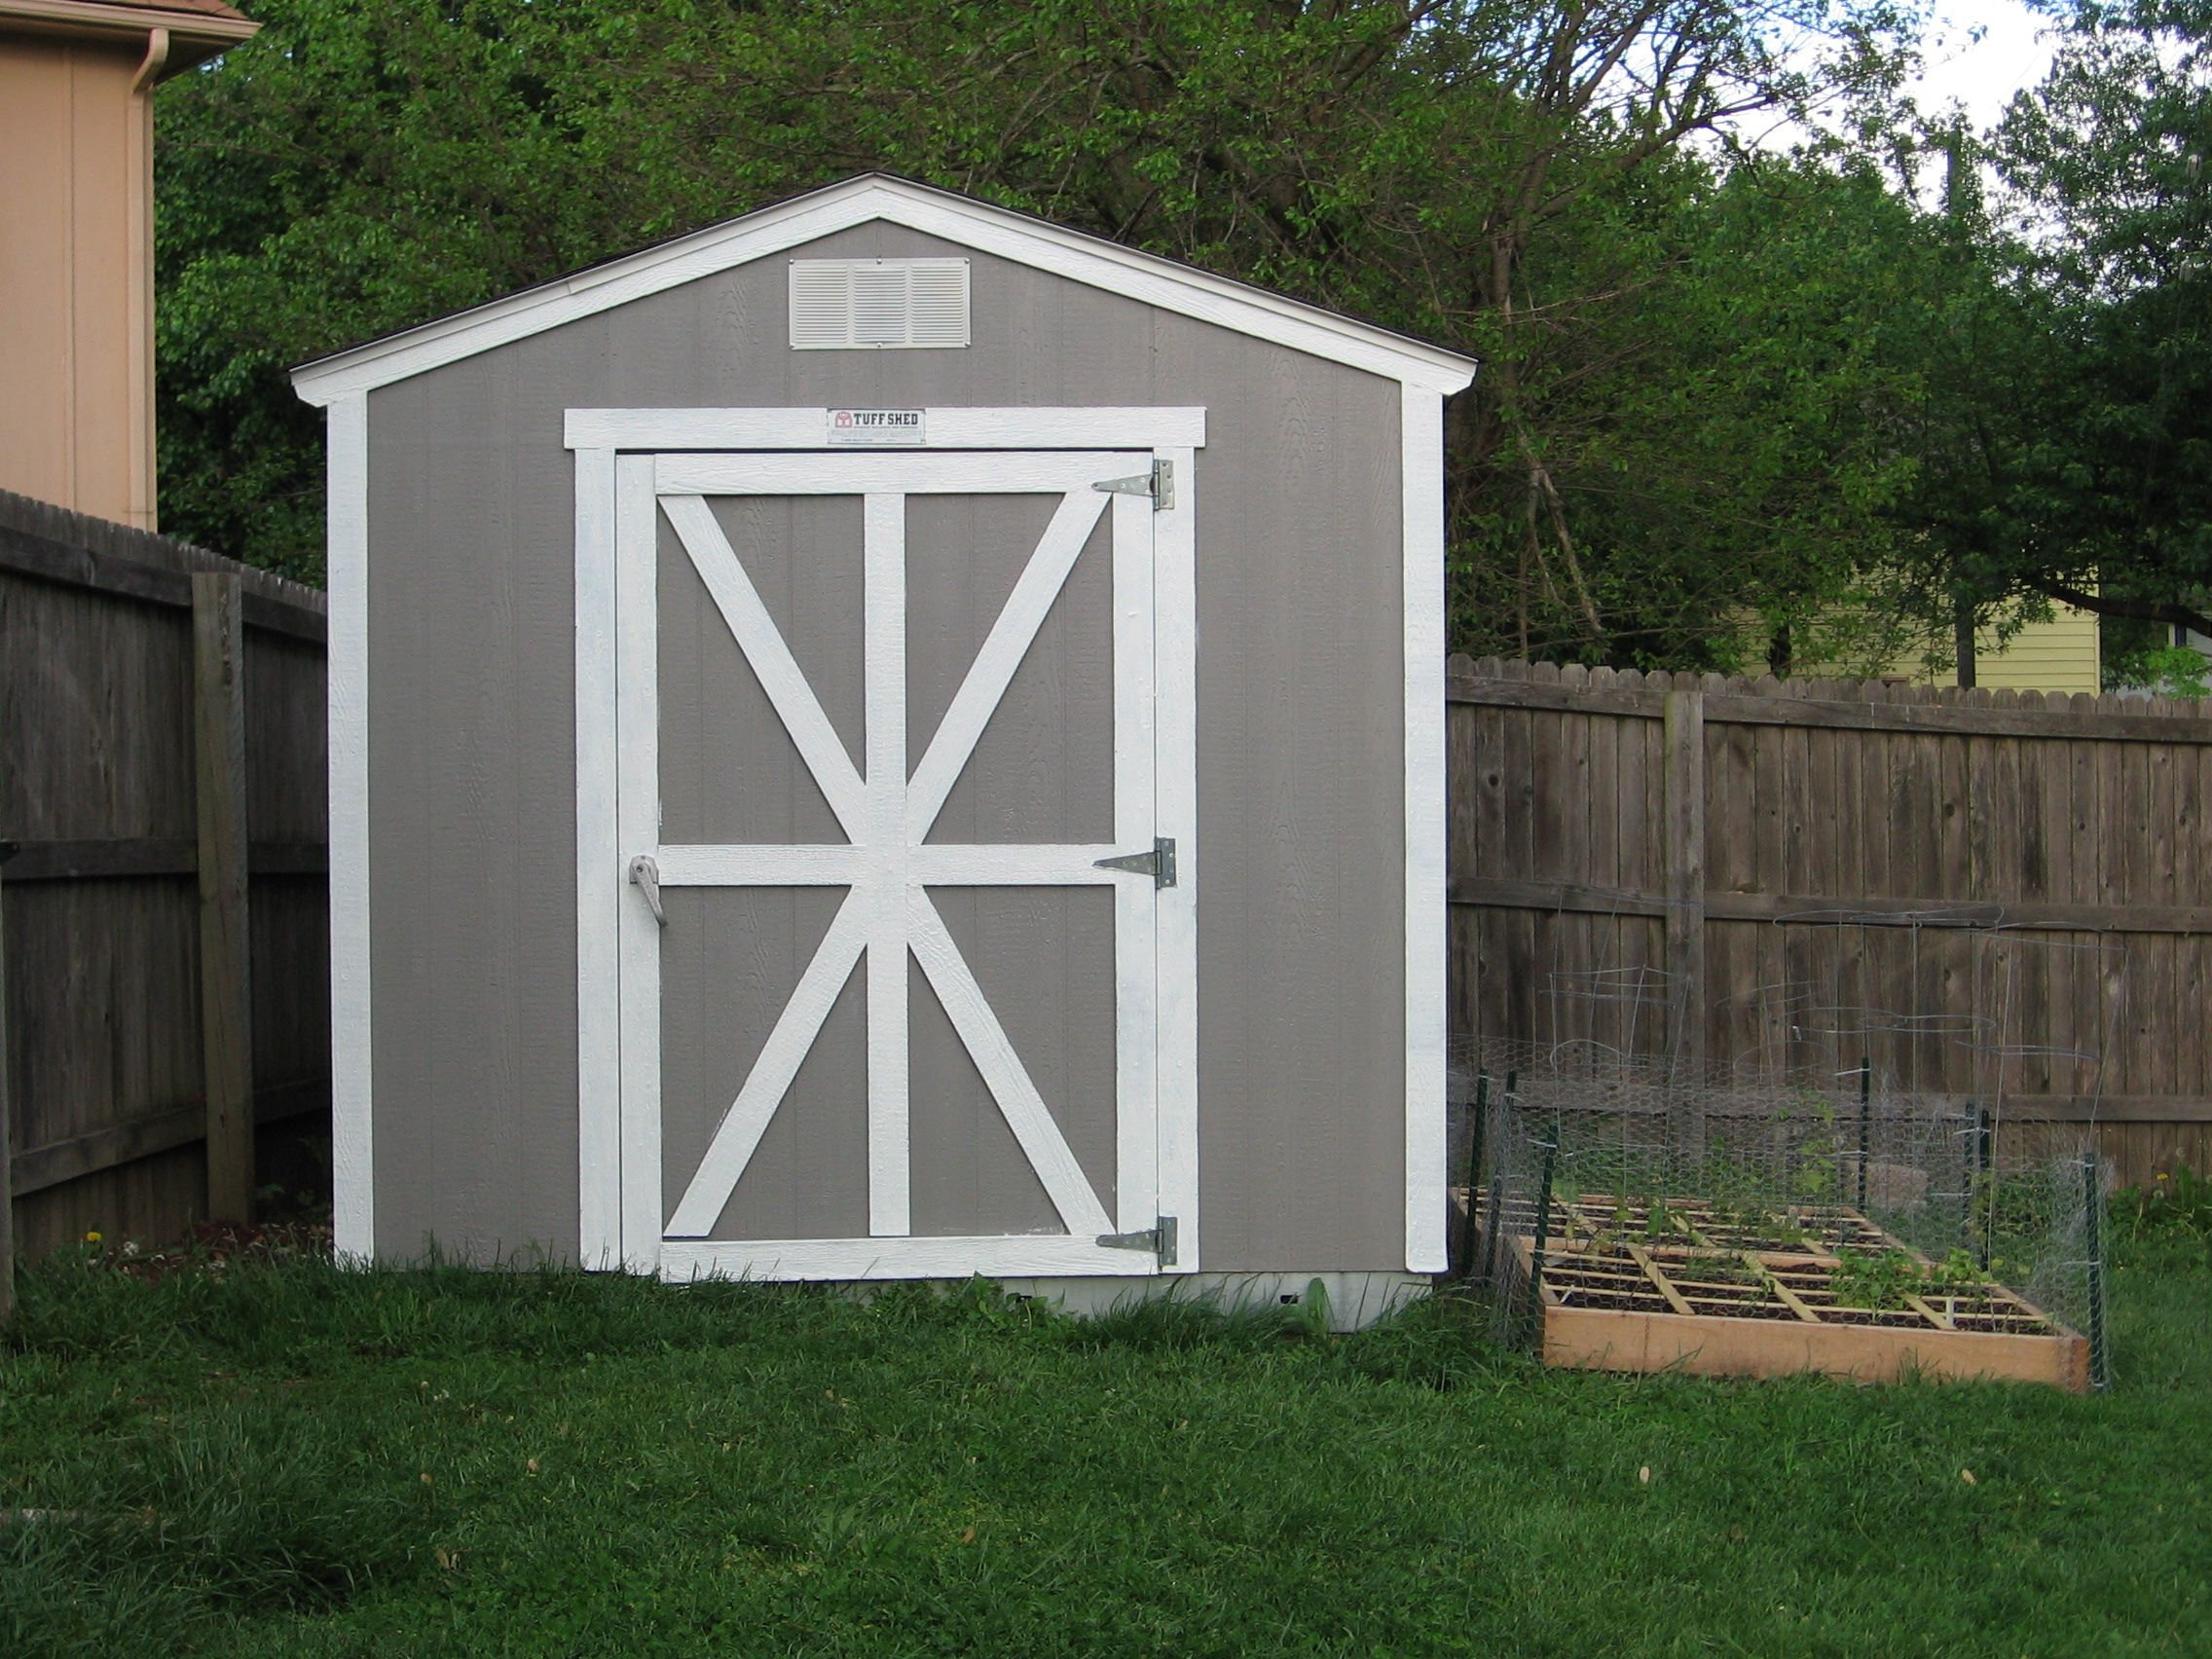 Barn shed door panel ideas nice gray wooden small shed for Barn door design ideas